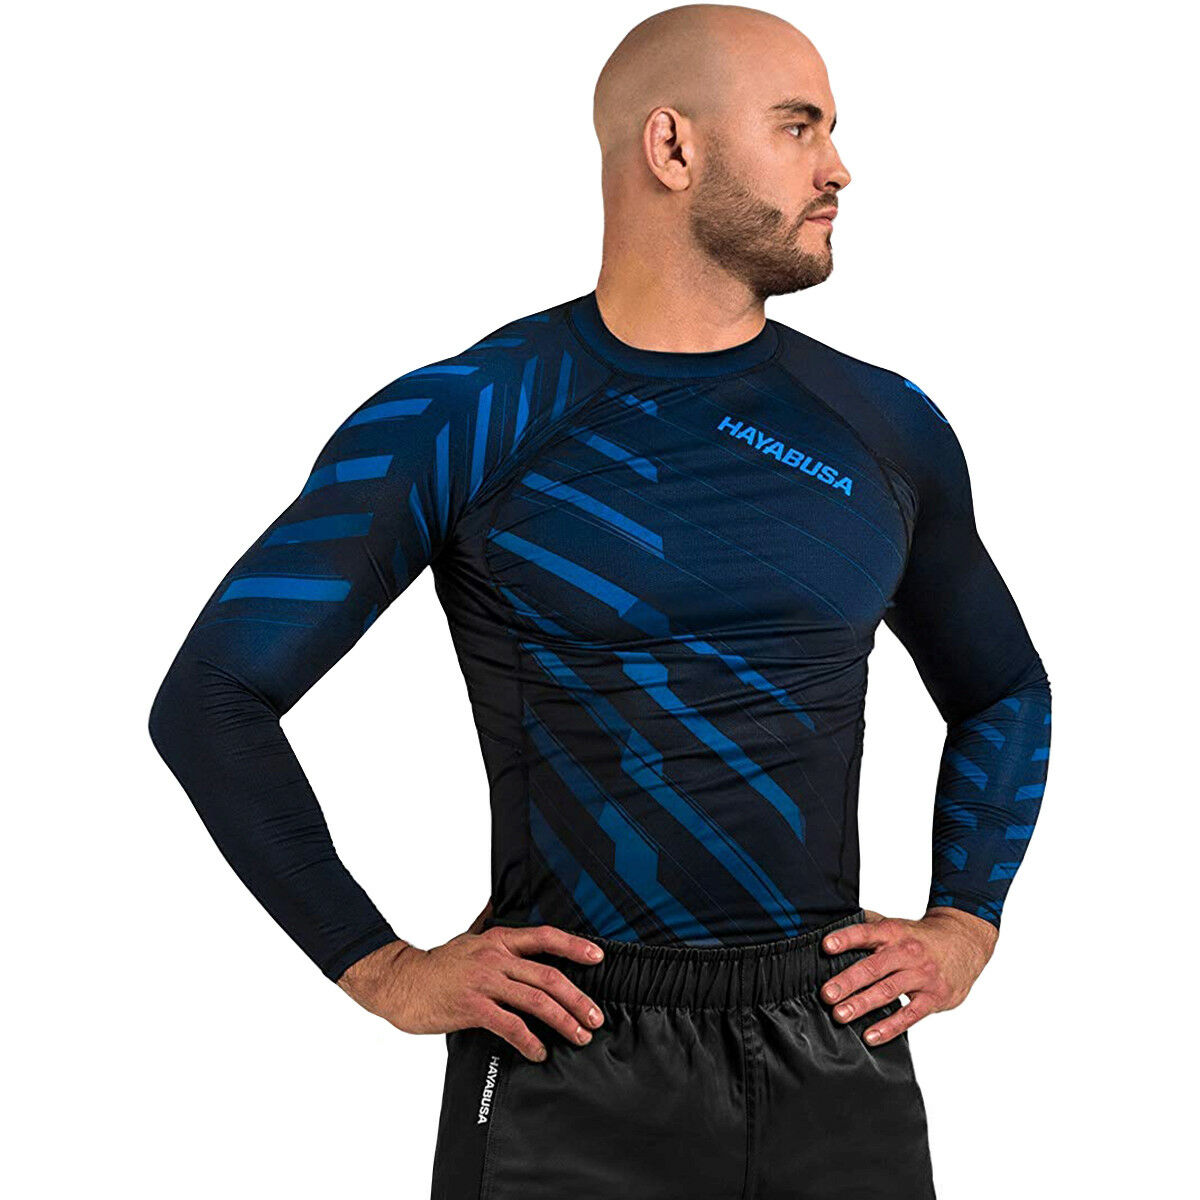 Hayabusa Odor Resist Long Sleeve MMA Compression Rashguard - bluee